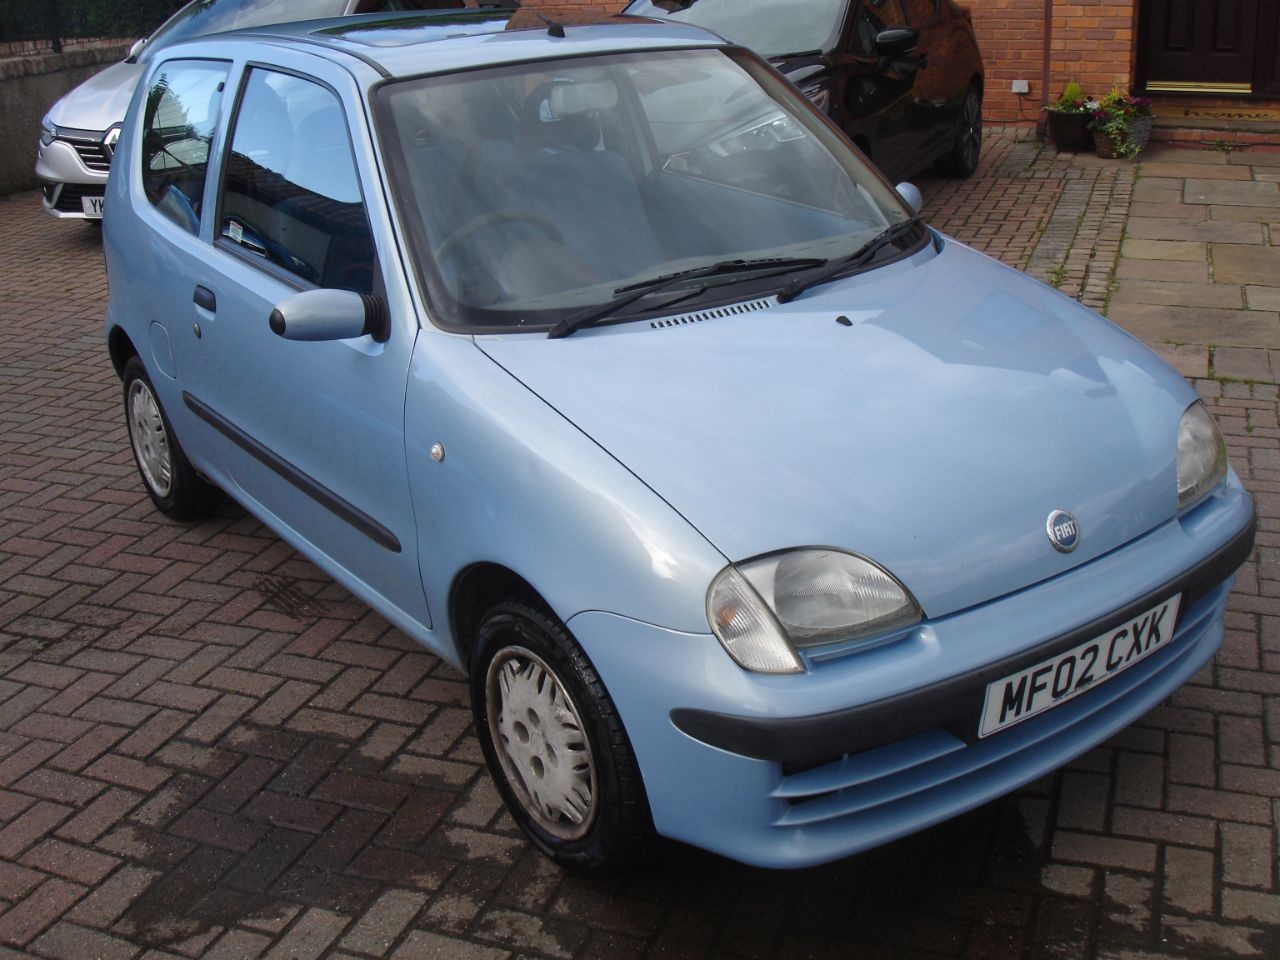 Fiat Seicento 1.1i SX 3dr Hatchback Petrol Metallic Blue at Level Pitch Selby